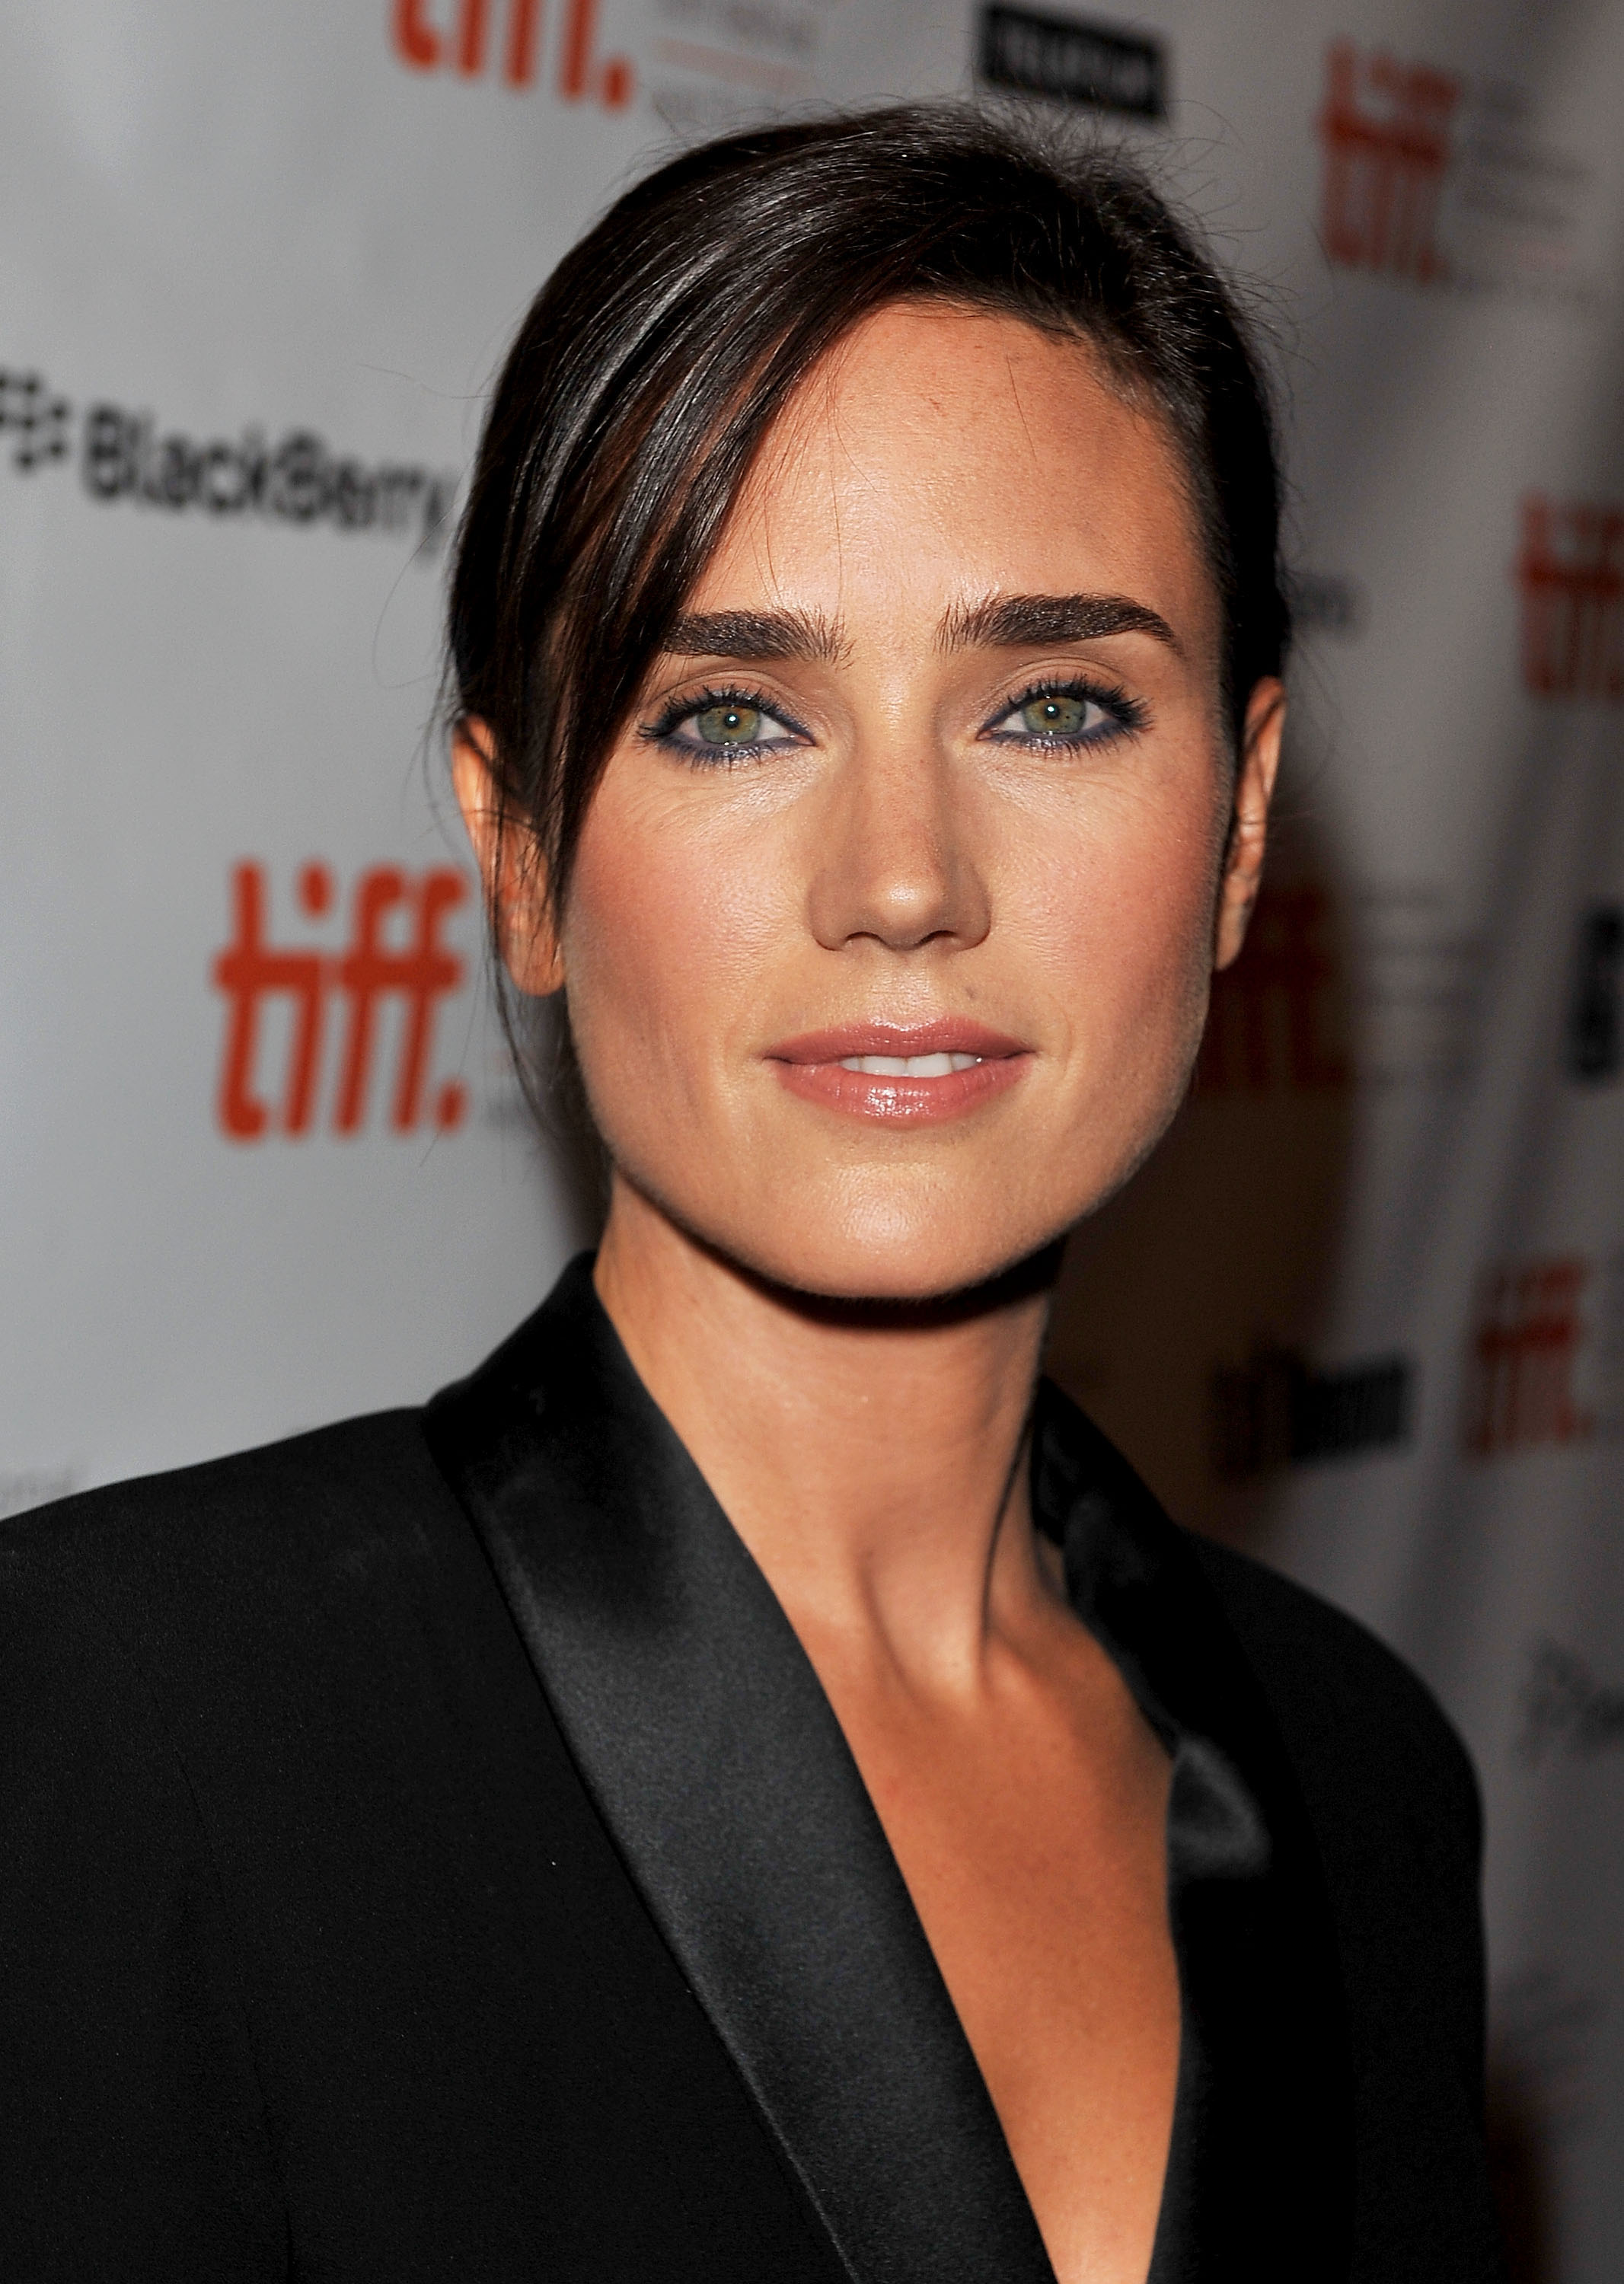 Jennifer Connelly Beauty Confession Surprising? Why u0026#39;Shelteru0026#39; Star Refuses To Torture Herself To Be Beautiful (PHOTOS)